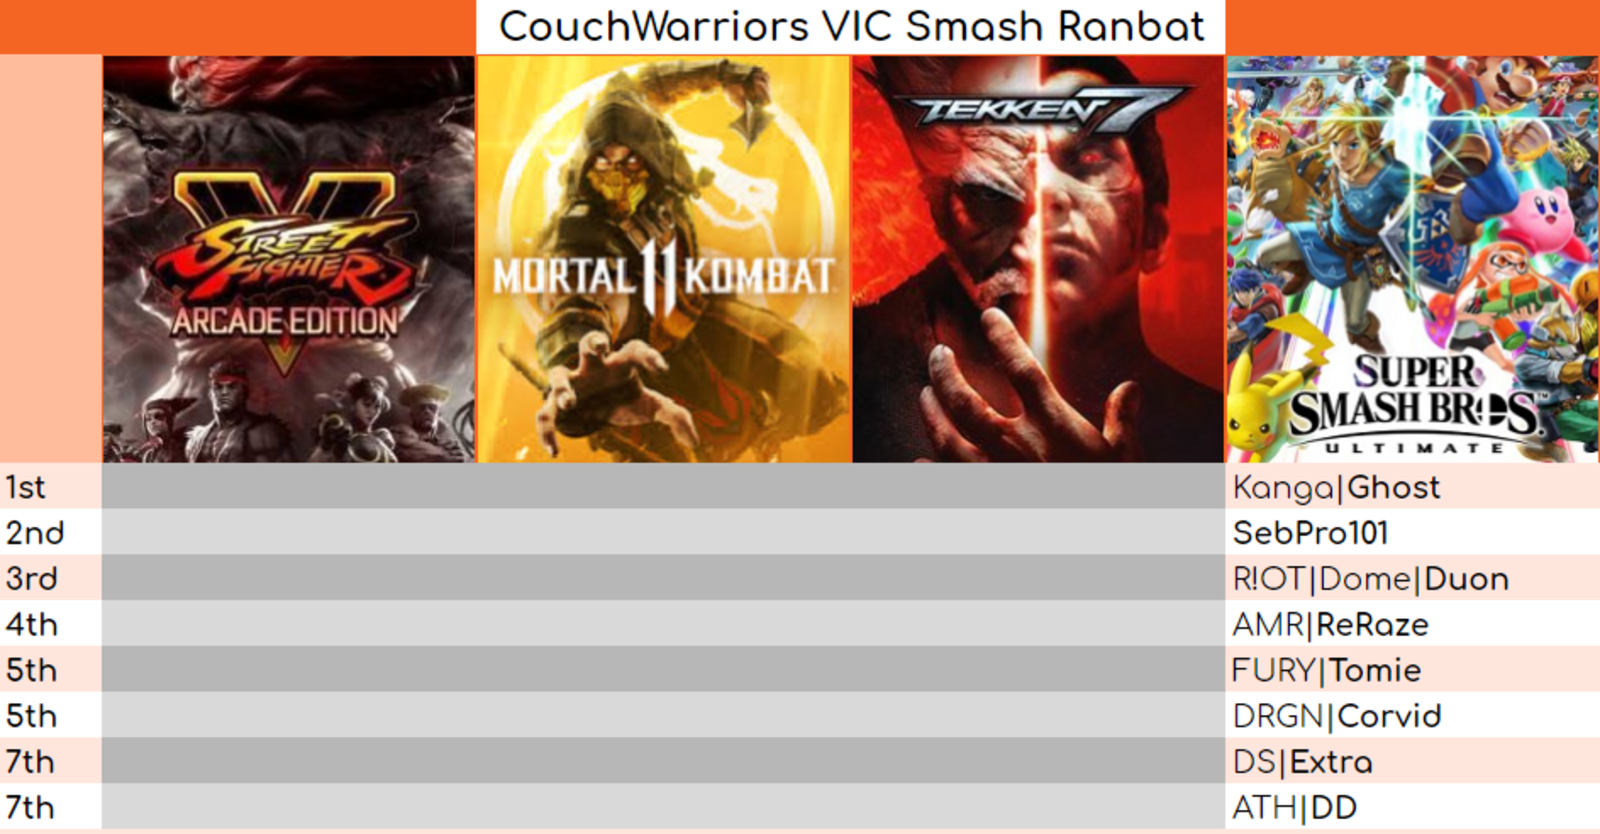 Results table for VIC Smash ranbat Oct 19